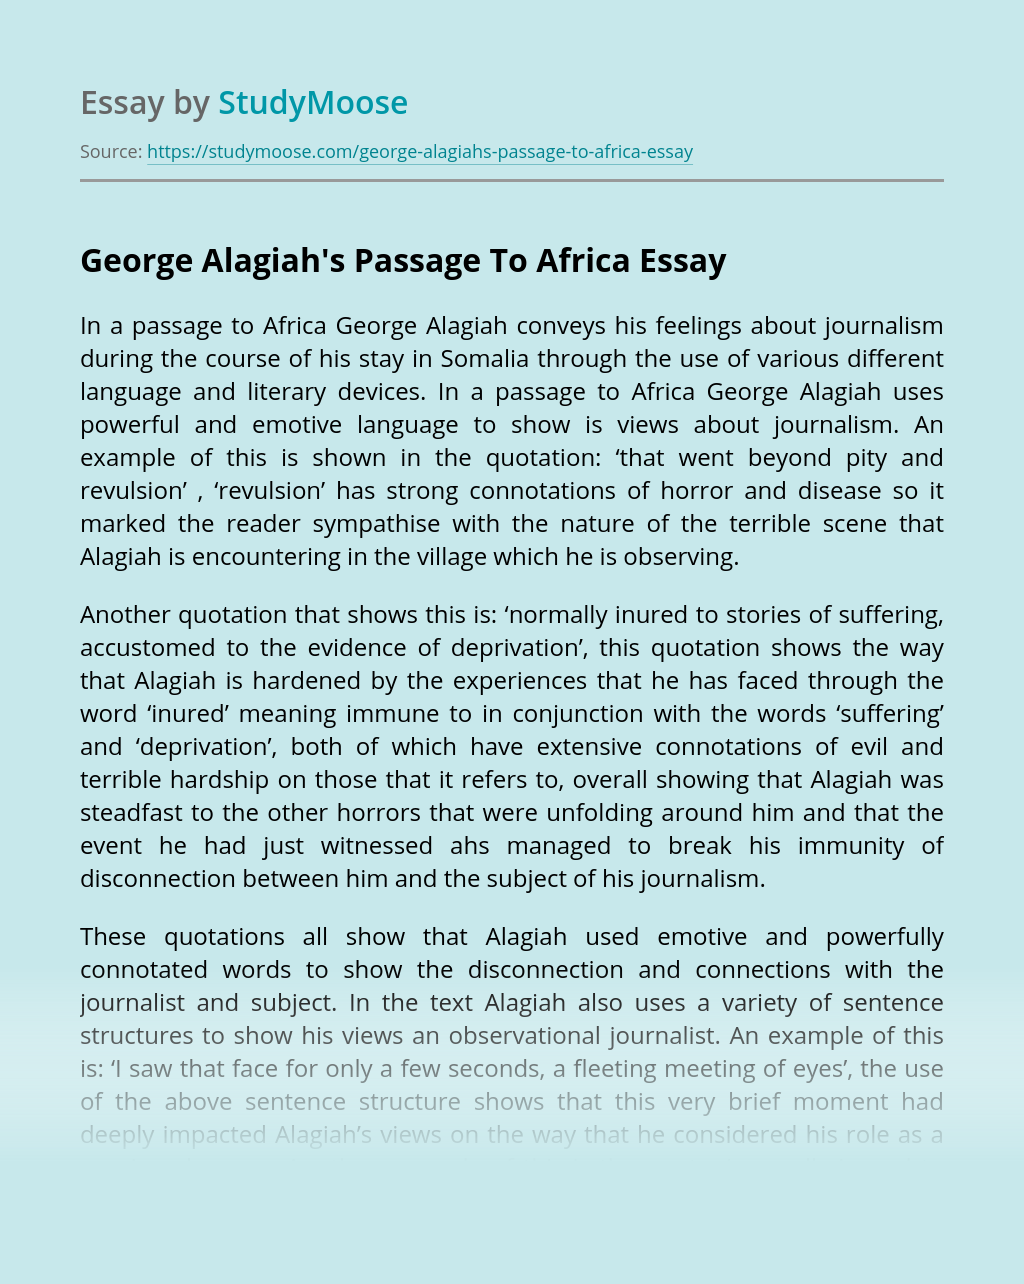 George Alagiah's Passage To Africa